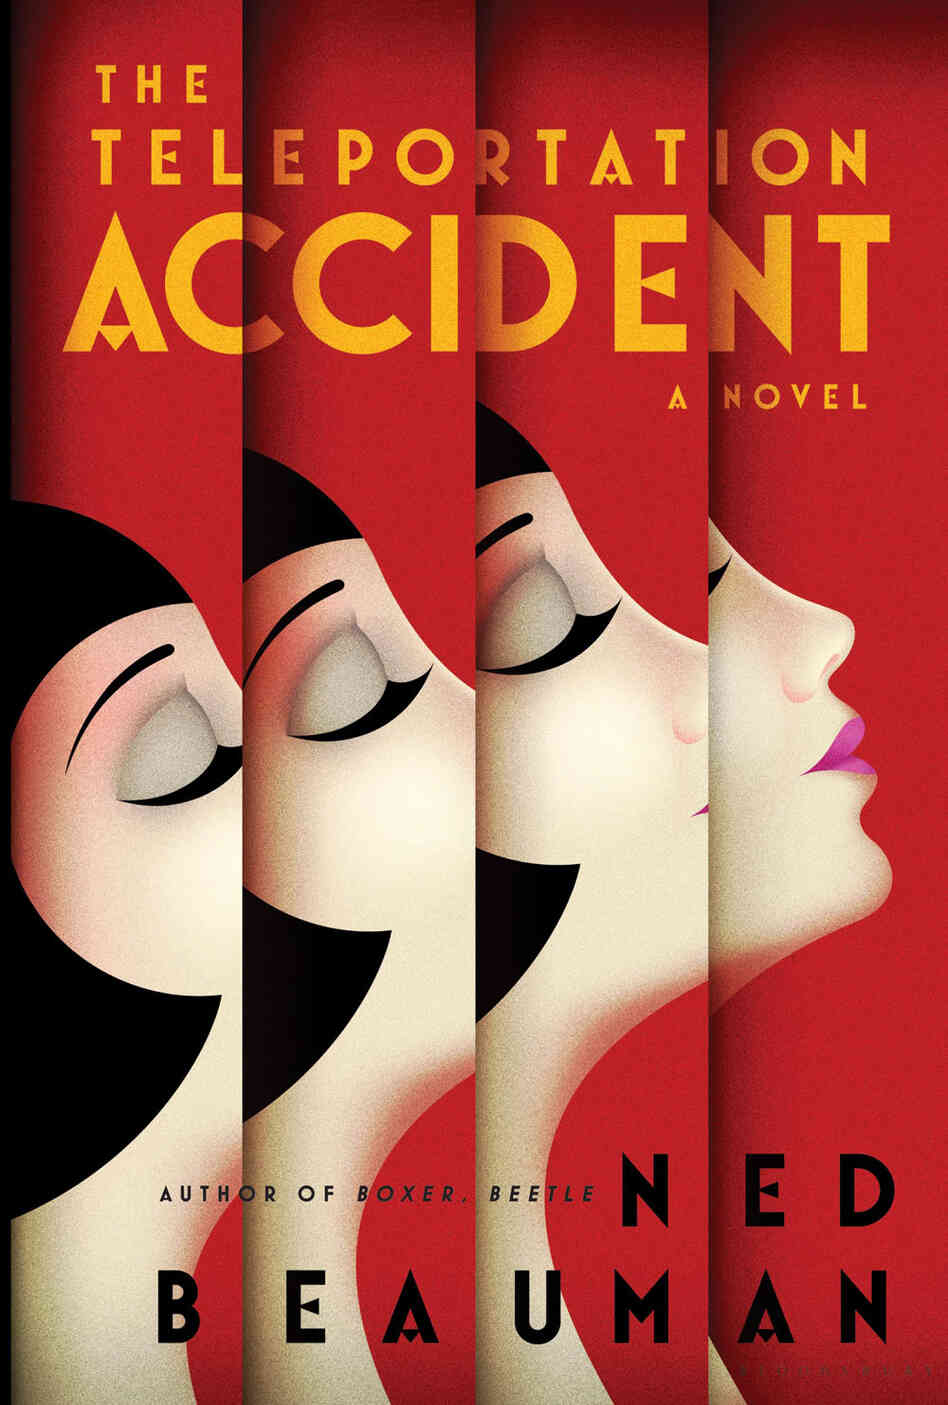 Best Cookbook Cover : Book review the teleportation accident by ned beauman npr